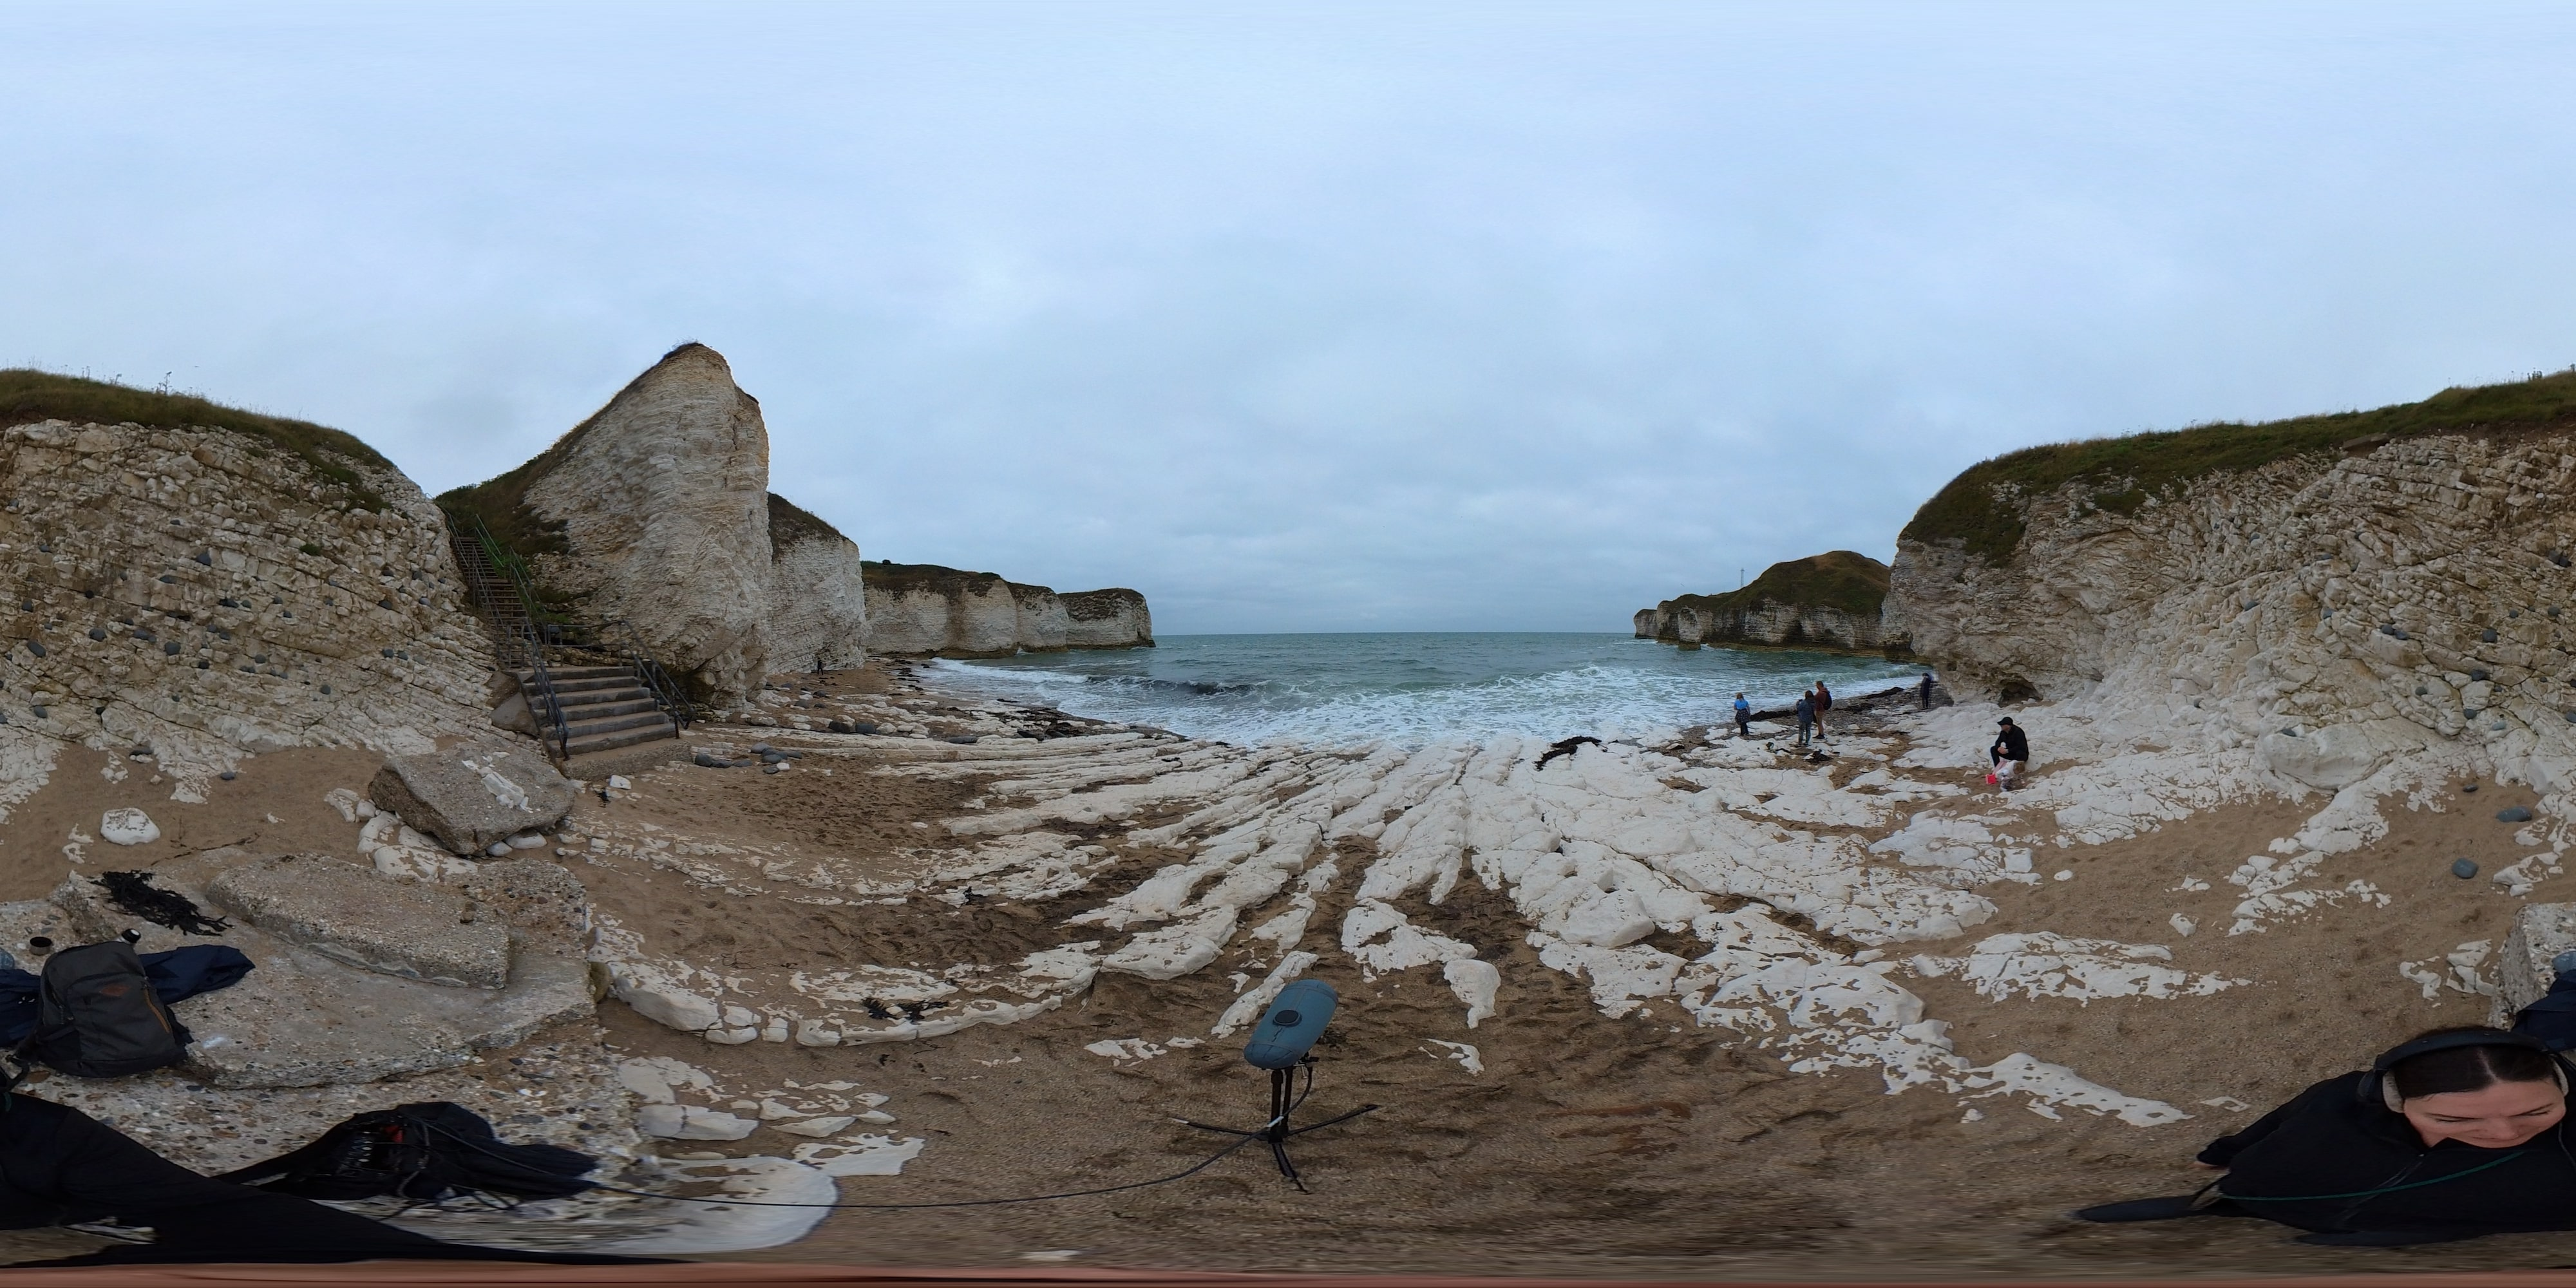 360 view of a little beach with rocks and cliffs